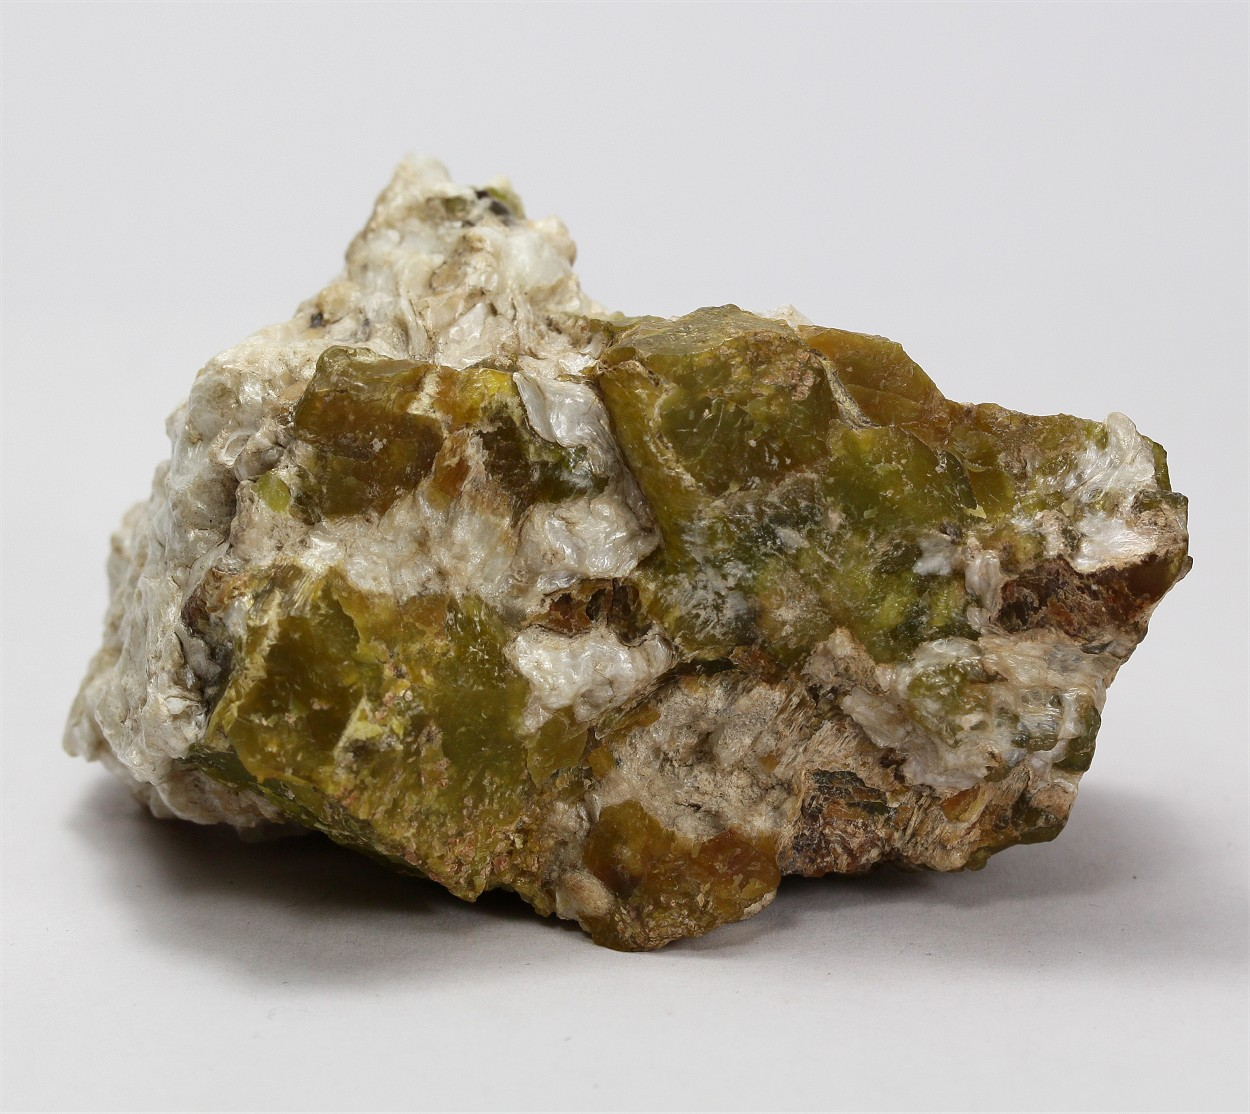 Serpentine Group With Hydrotalcite